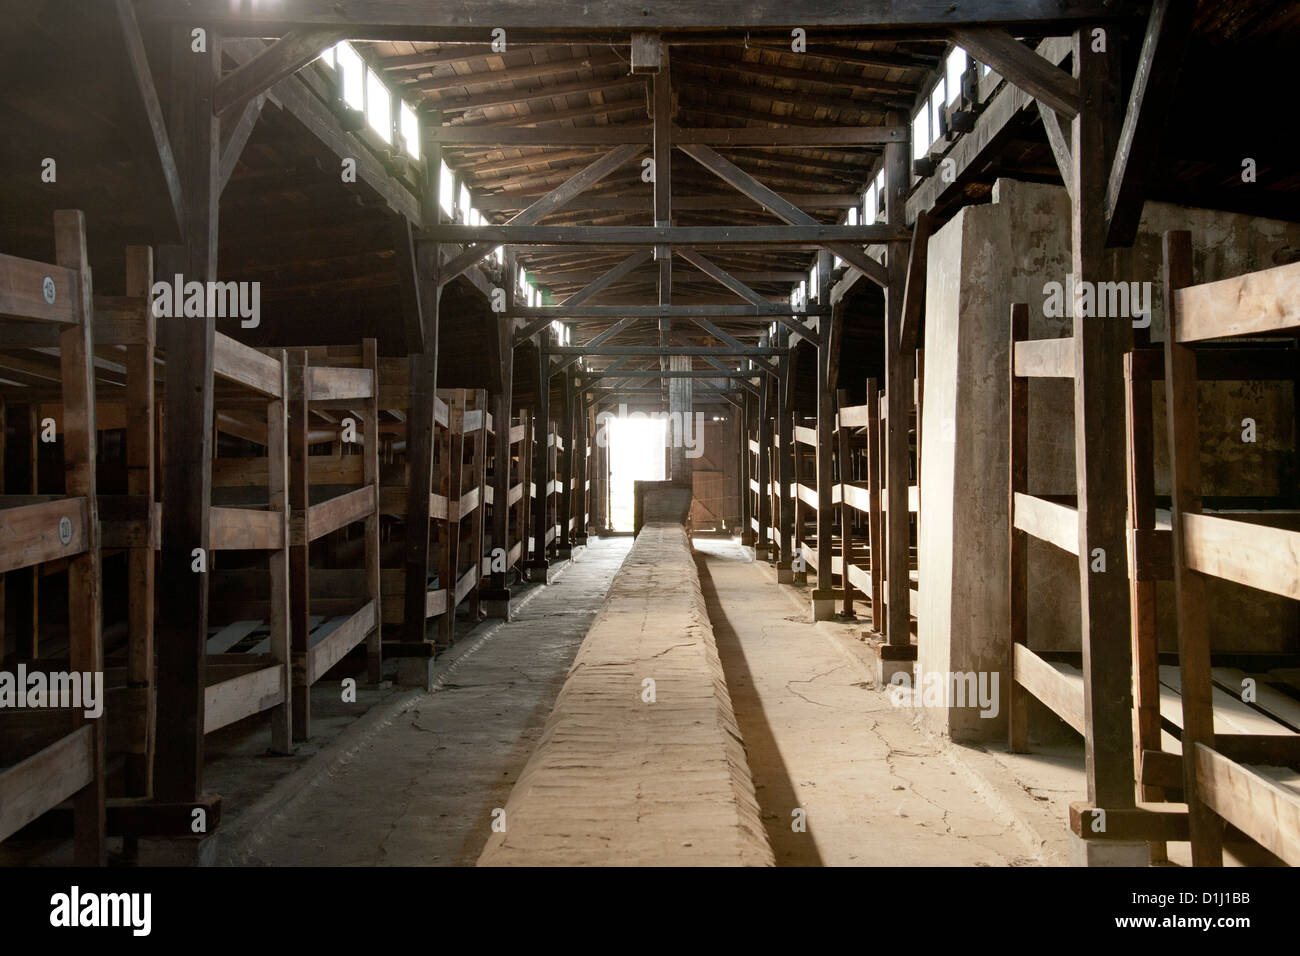 Interior of one of the barracks in the former Auschwitz II–Birkenau concentration camp in southern Poland. - Stock Image